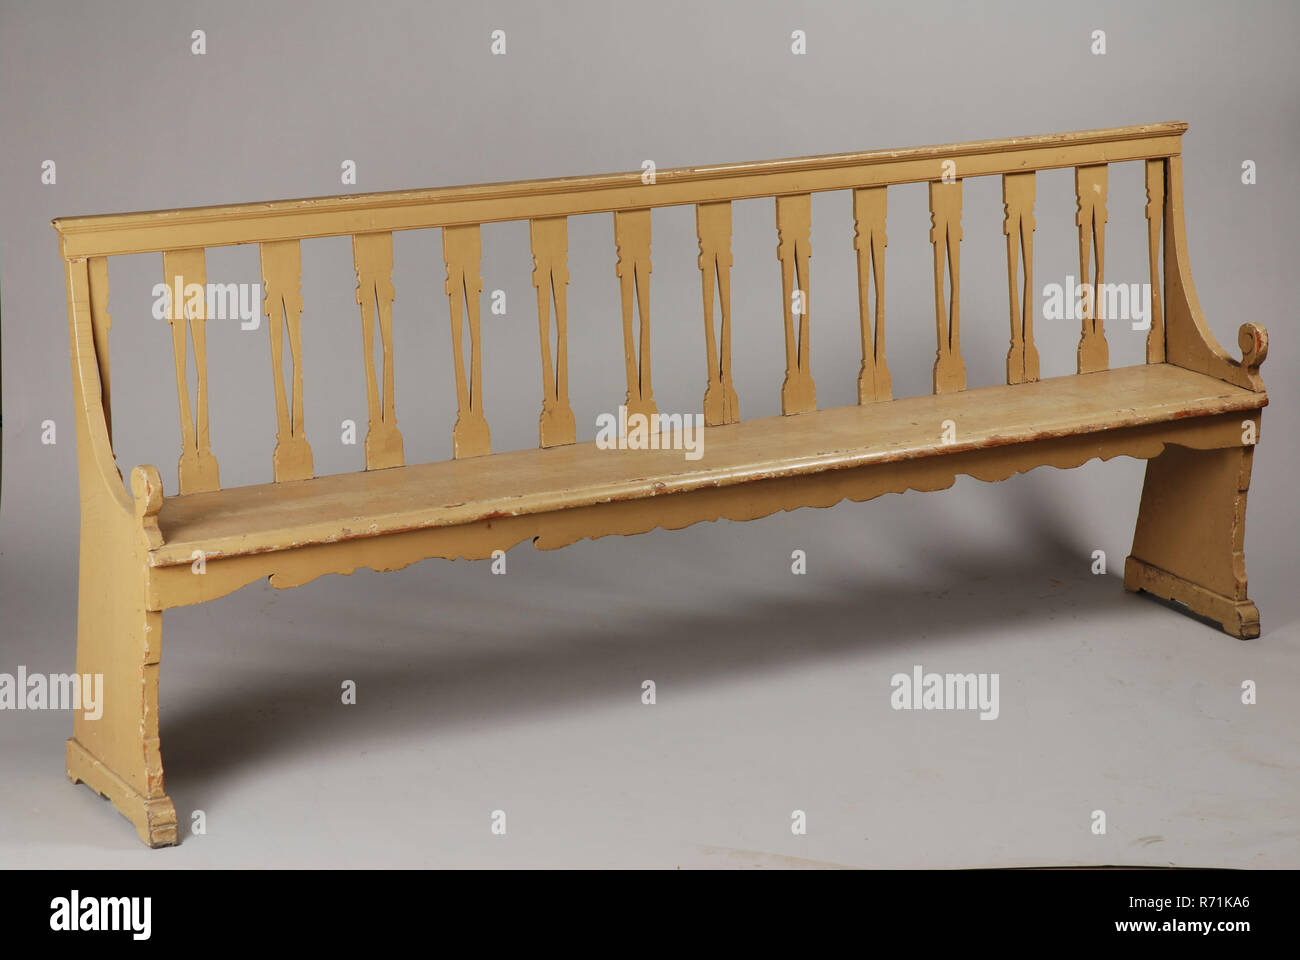 Picture of: Green Painted Long Garden Bench Or Bench Sofa Furniture Interior Design Wood Coniferous Paint Openwork Backrest With Bars Under The Seat Scalloped Line Stock Photo Alamy